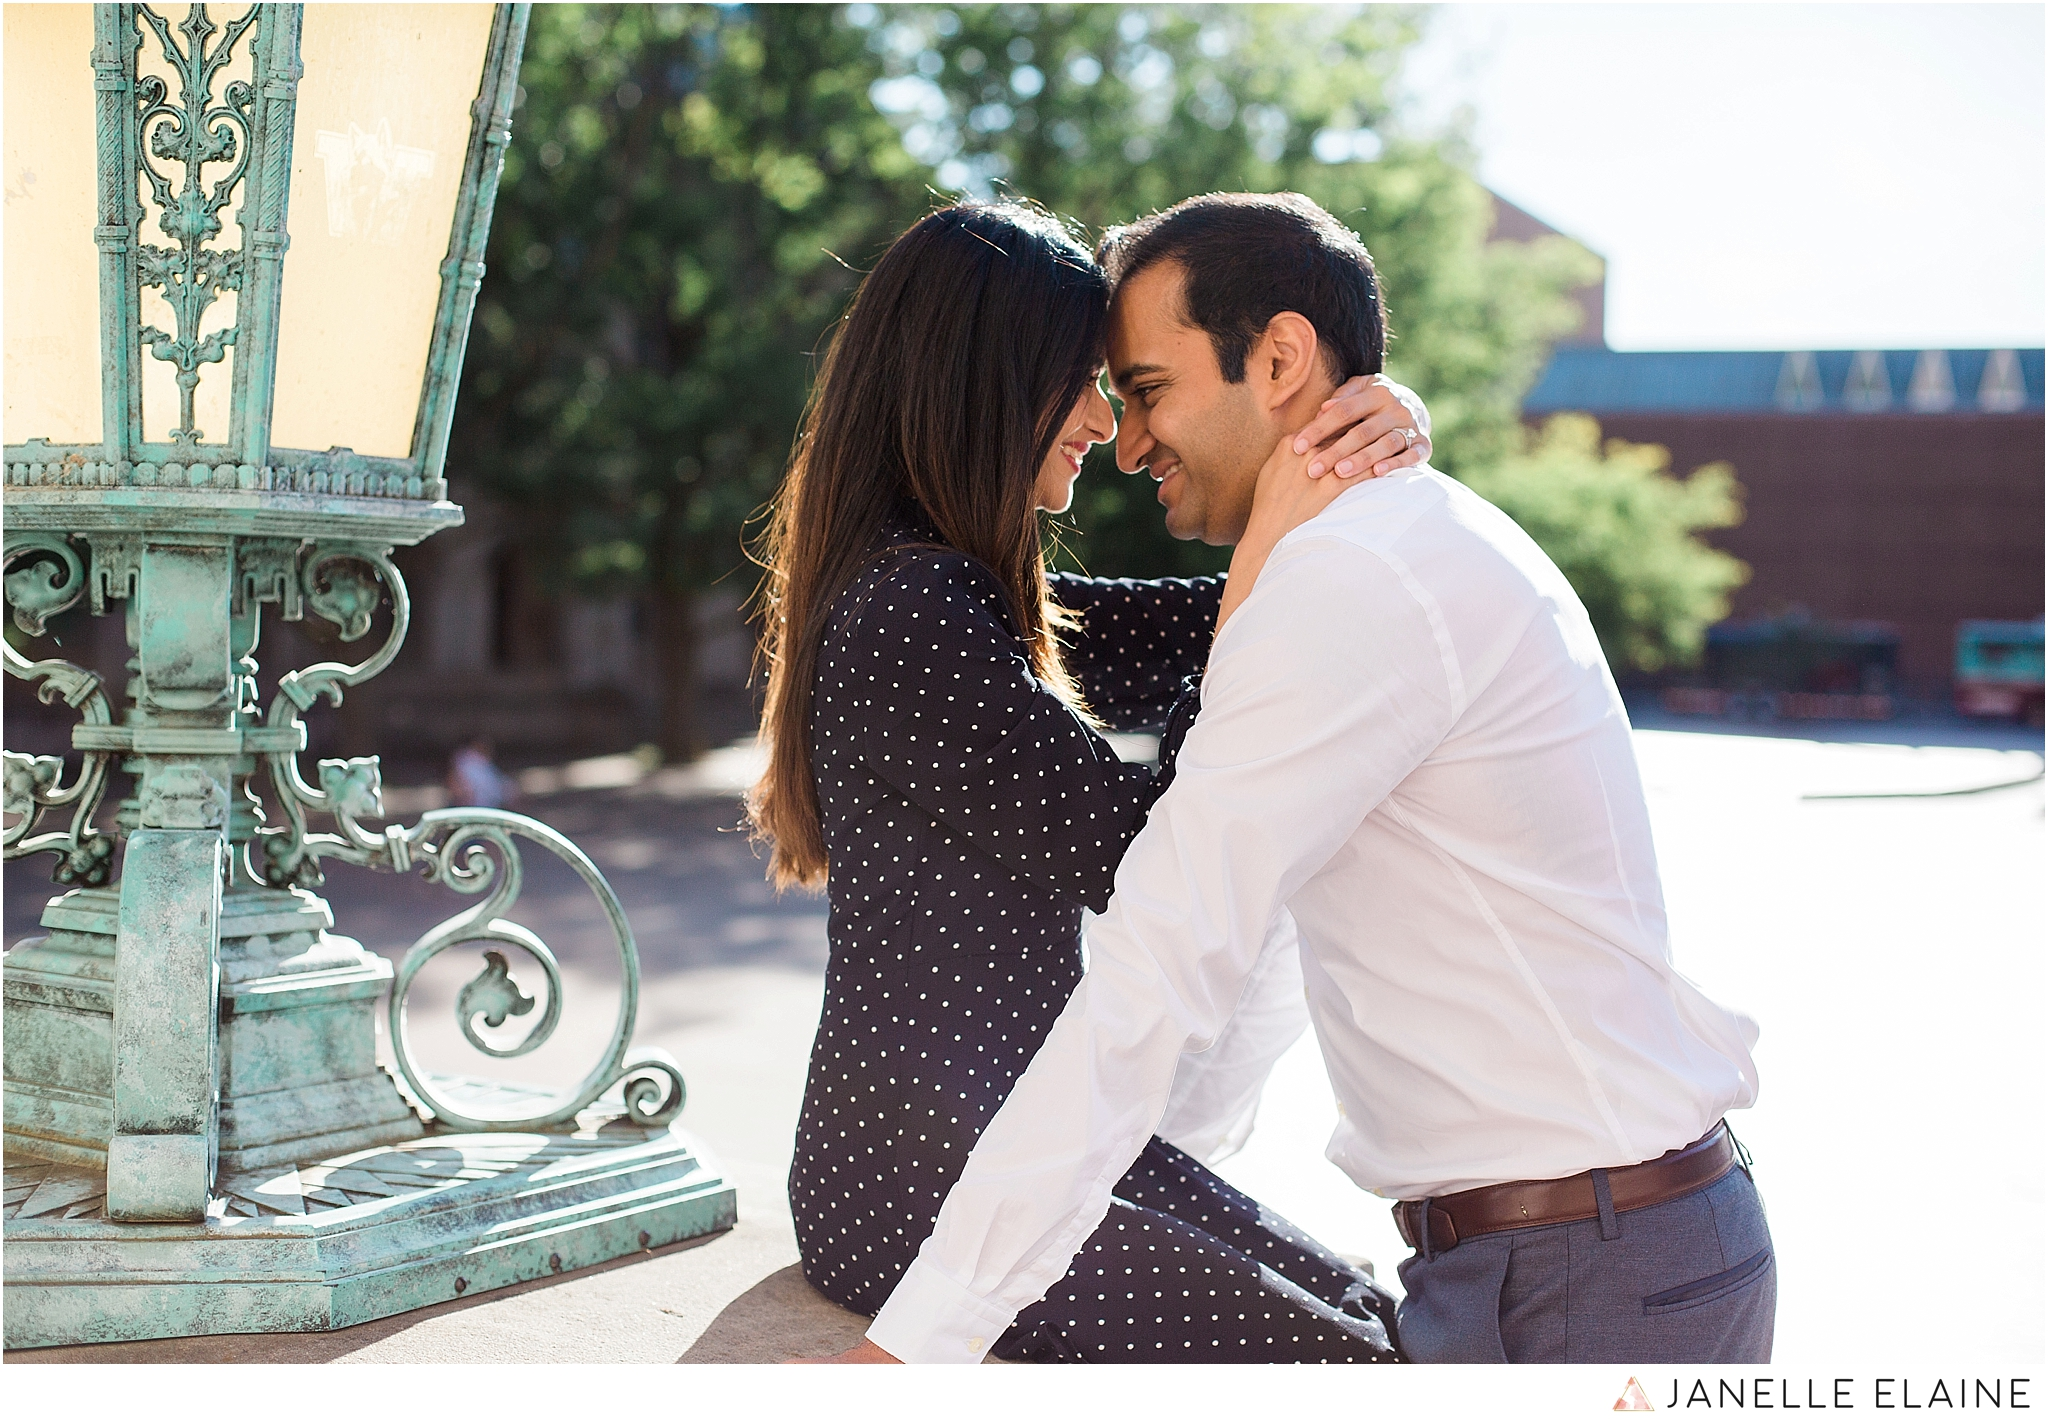 janelle elaine photography-zain and umema-seattle-uw-red square-engagement-photographer-152.jpg